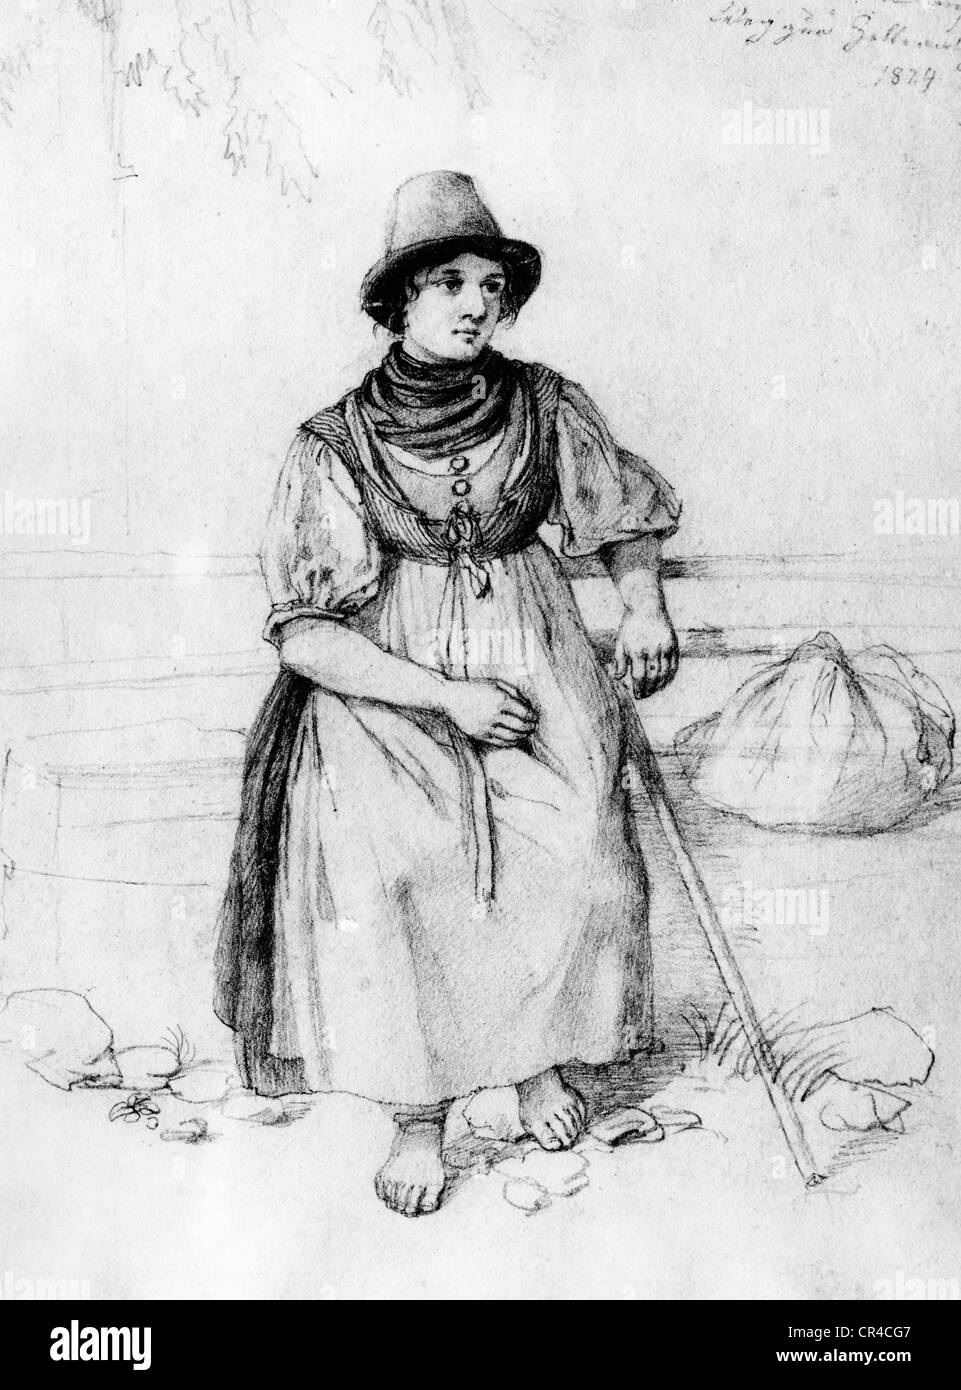 Dairymaid, Zelleralm, Wendelstein, Upper Bavaria, Germany, Europe, historical drawing by L. Quaglio, 1824 - Stock Image